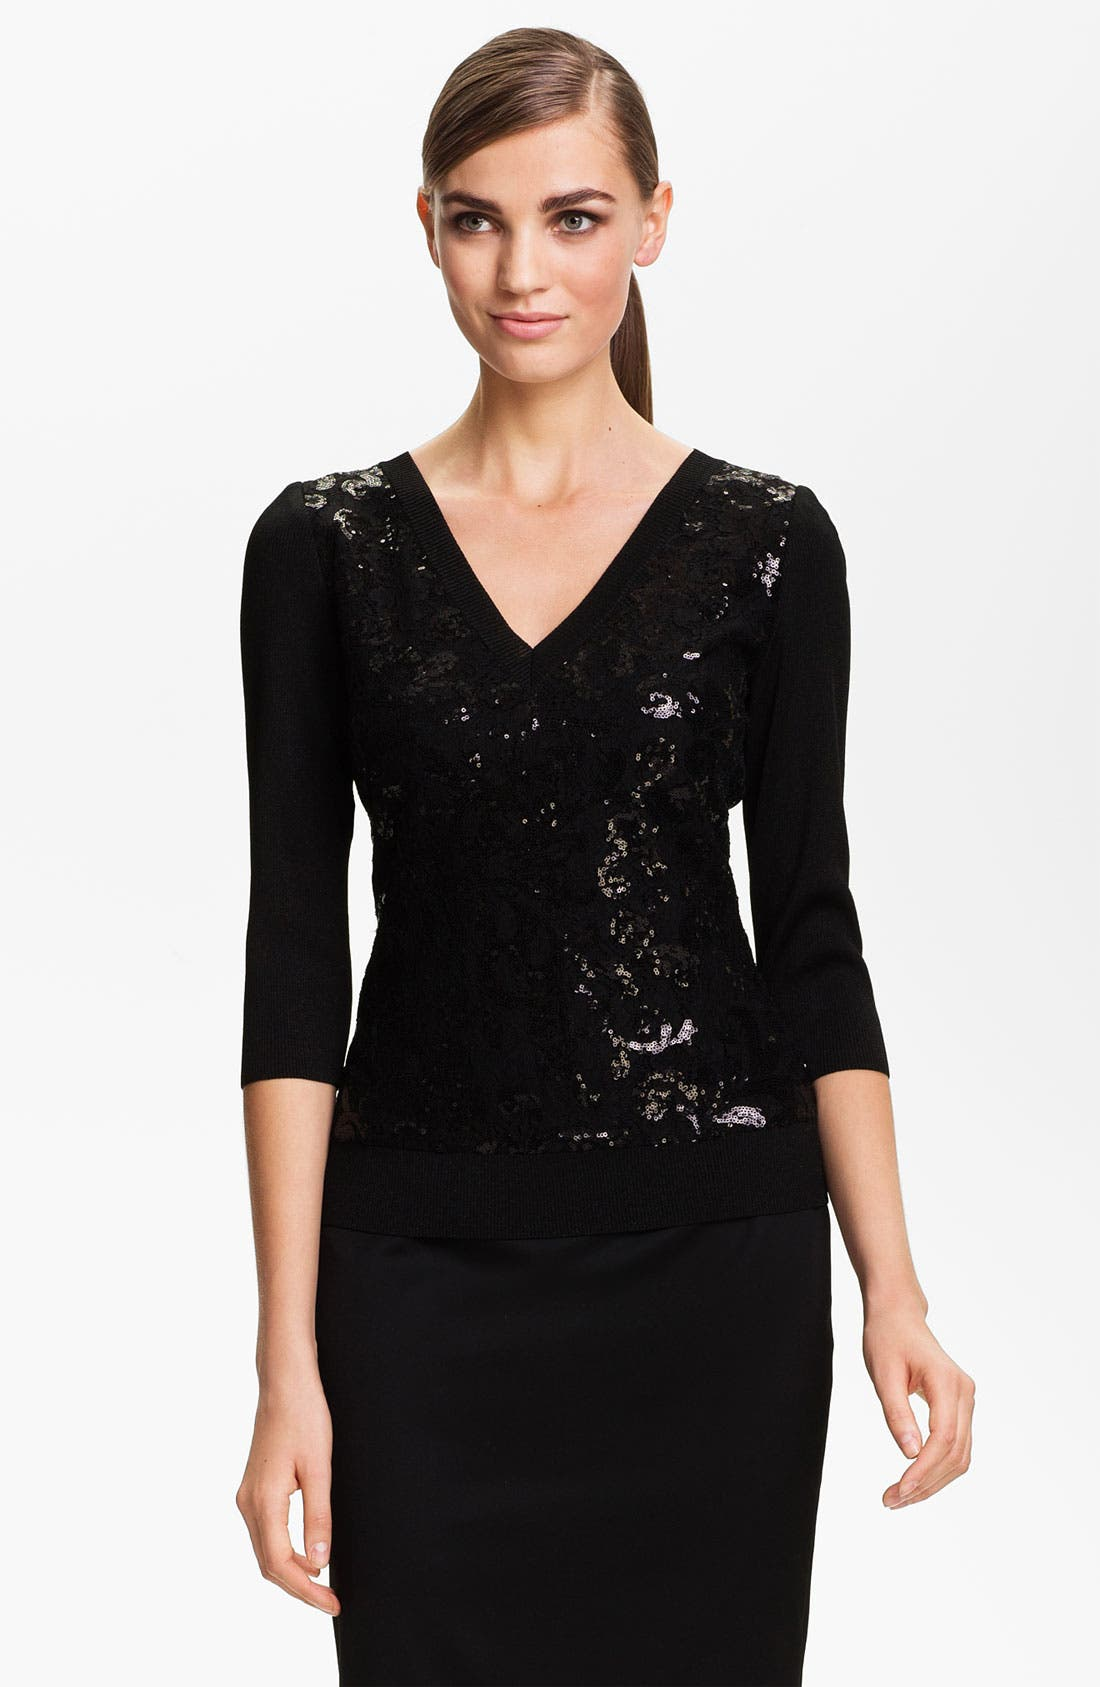 Main Image - St. John Collection Lace Front Shimmer Rib Knit Sweater